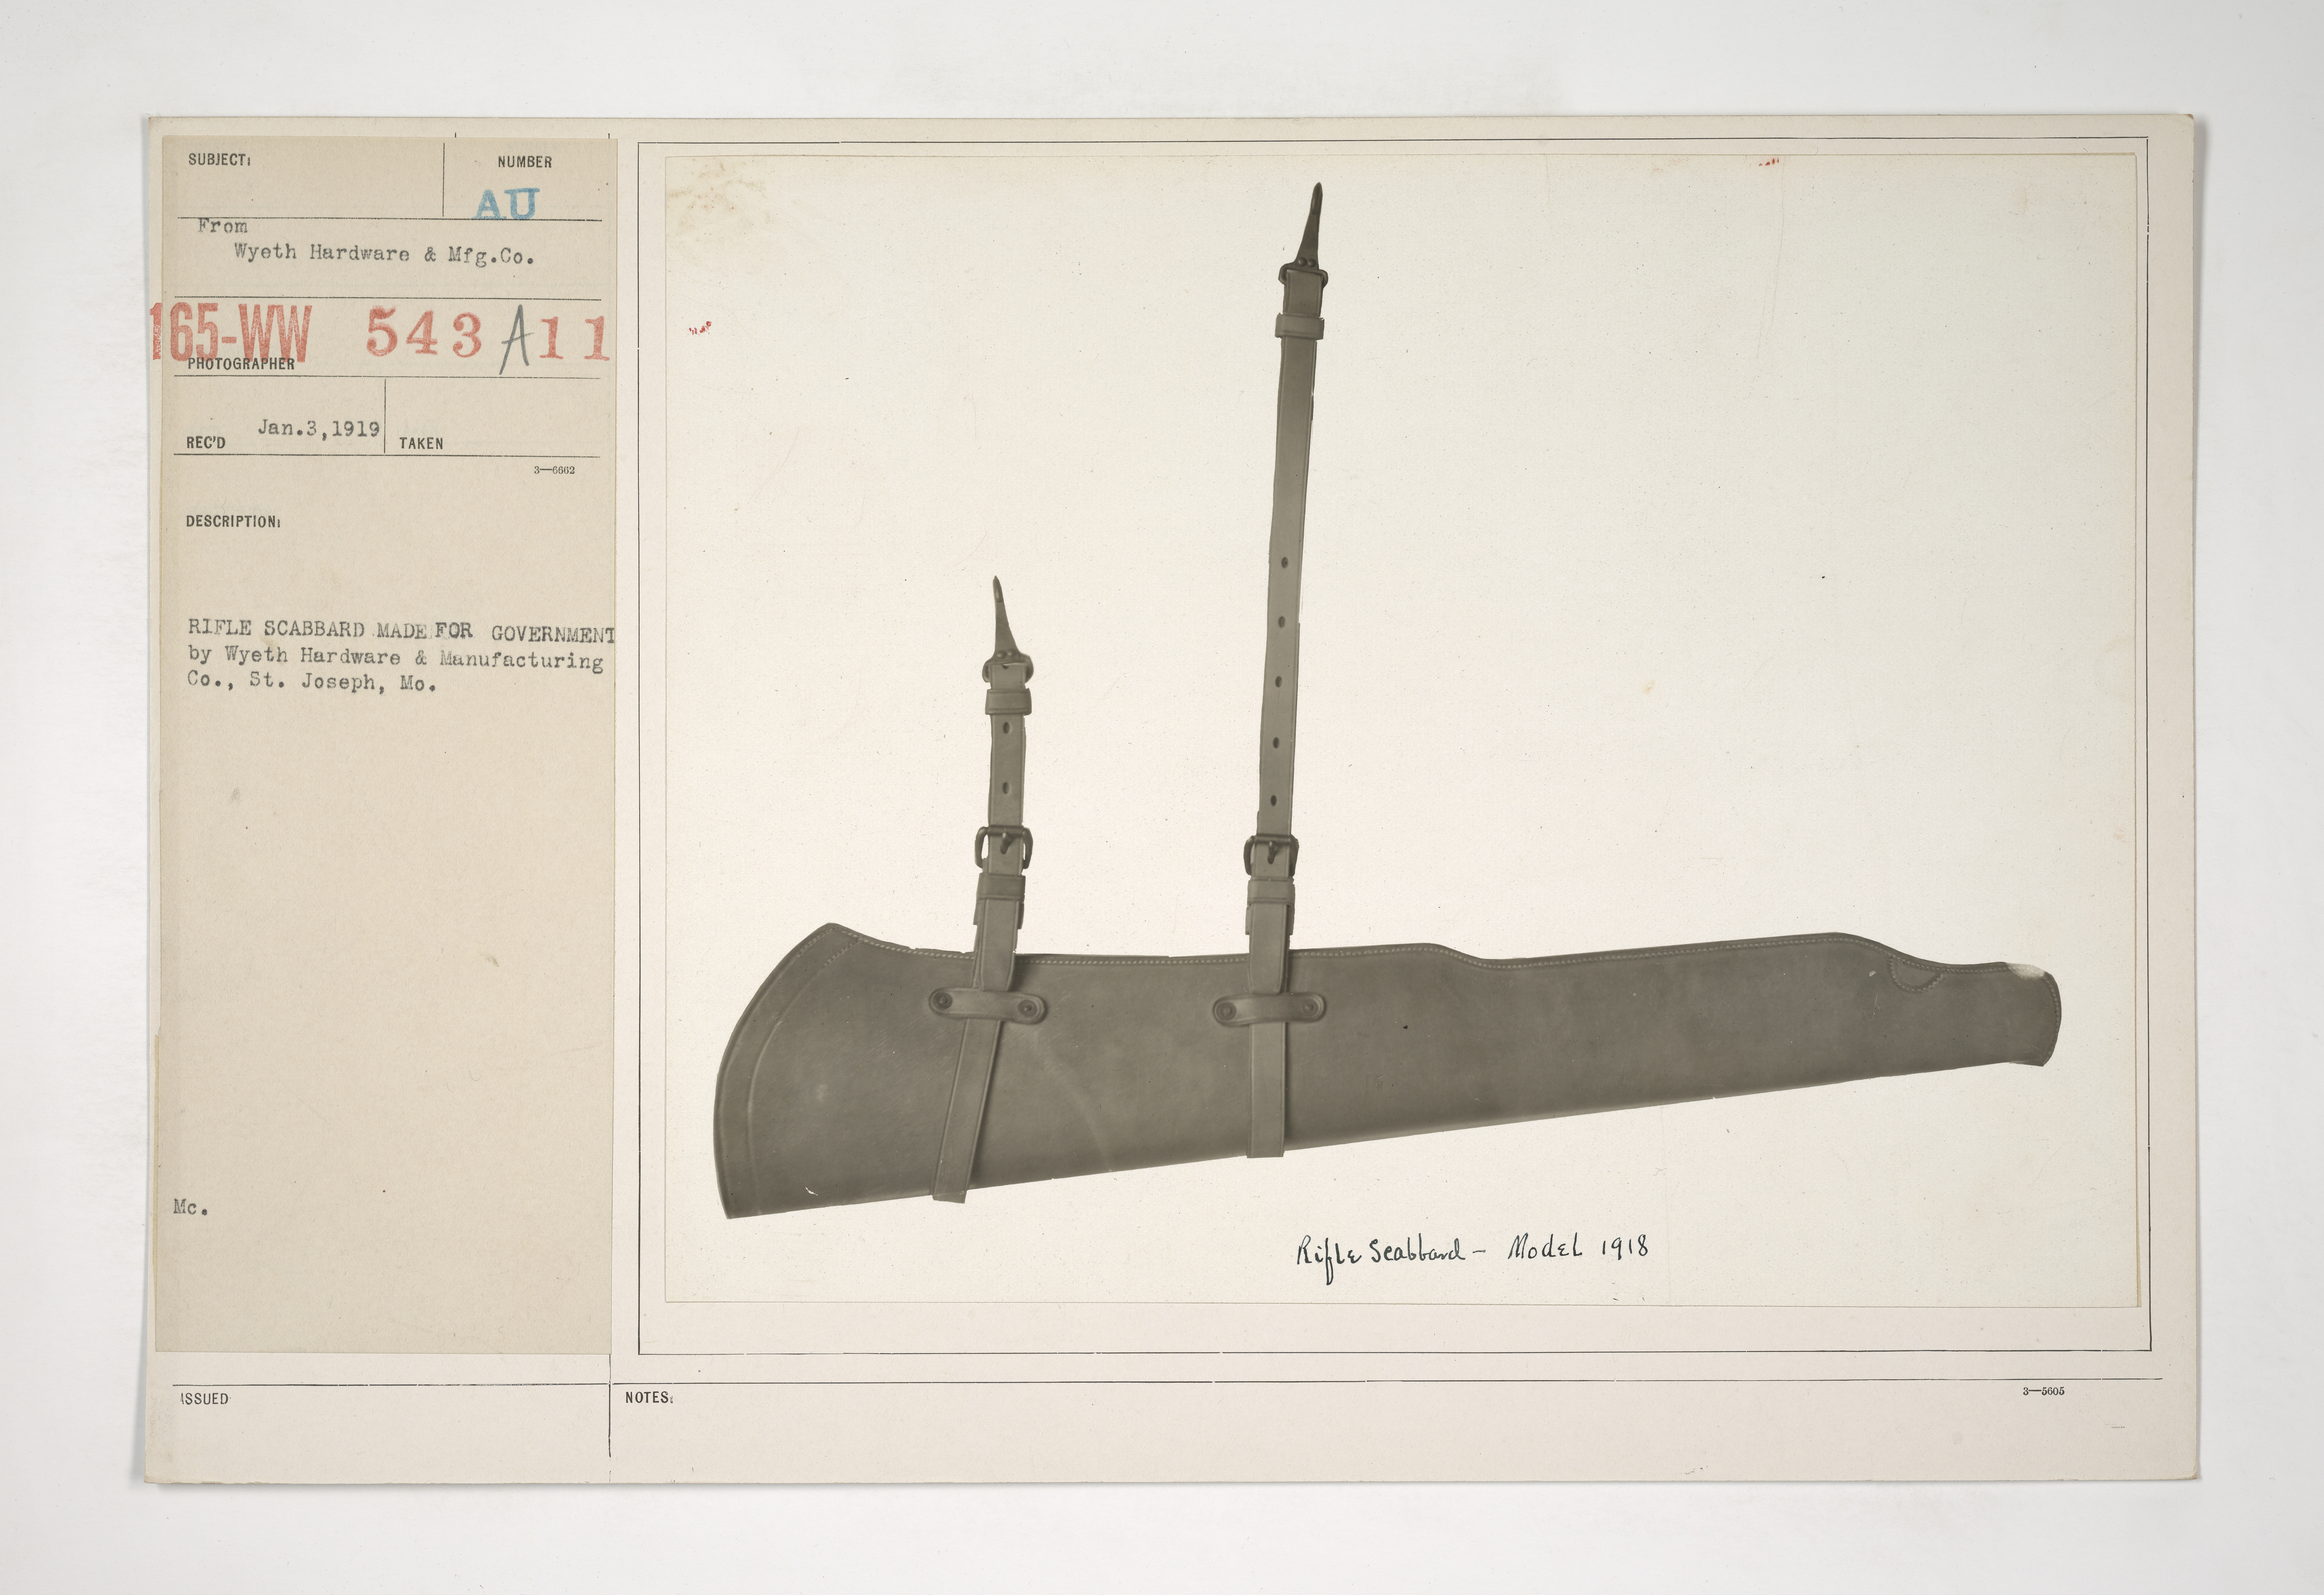 Uniforms and Equipment - Pouches and Scabbards [165-WW-543A-11]